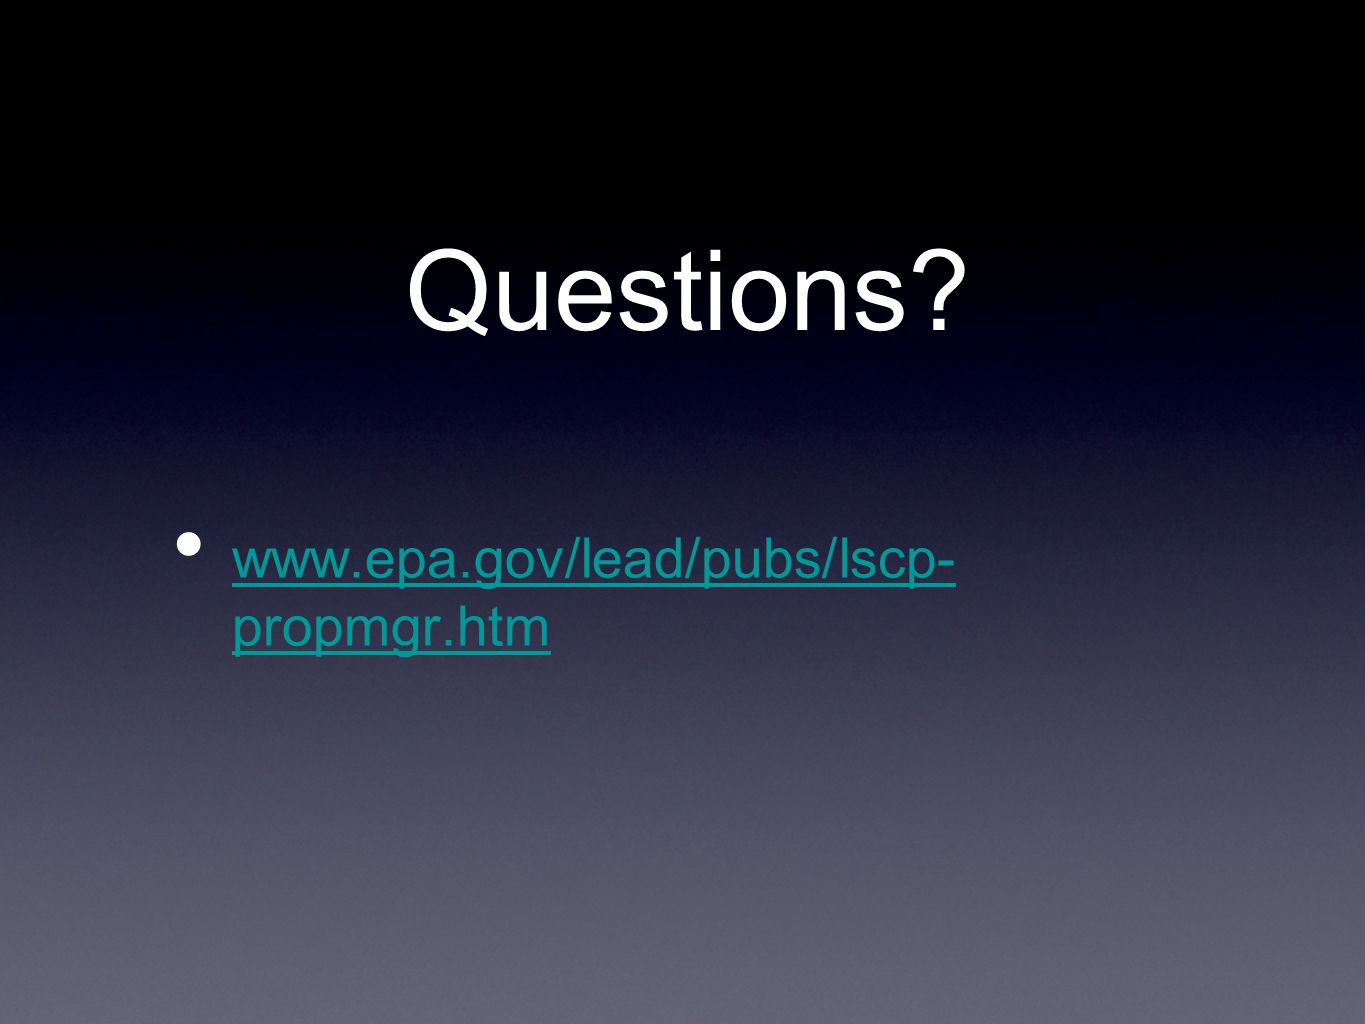 Questions www.epa.gov/lead/pubs/lscp- propmgr.htm www.epa.gov/lead/pubs/lscp- propmgr.htm